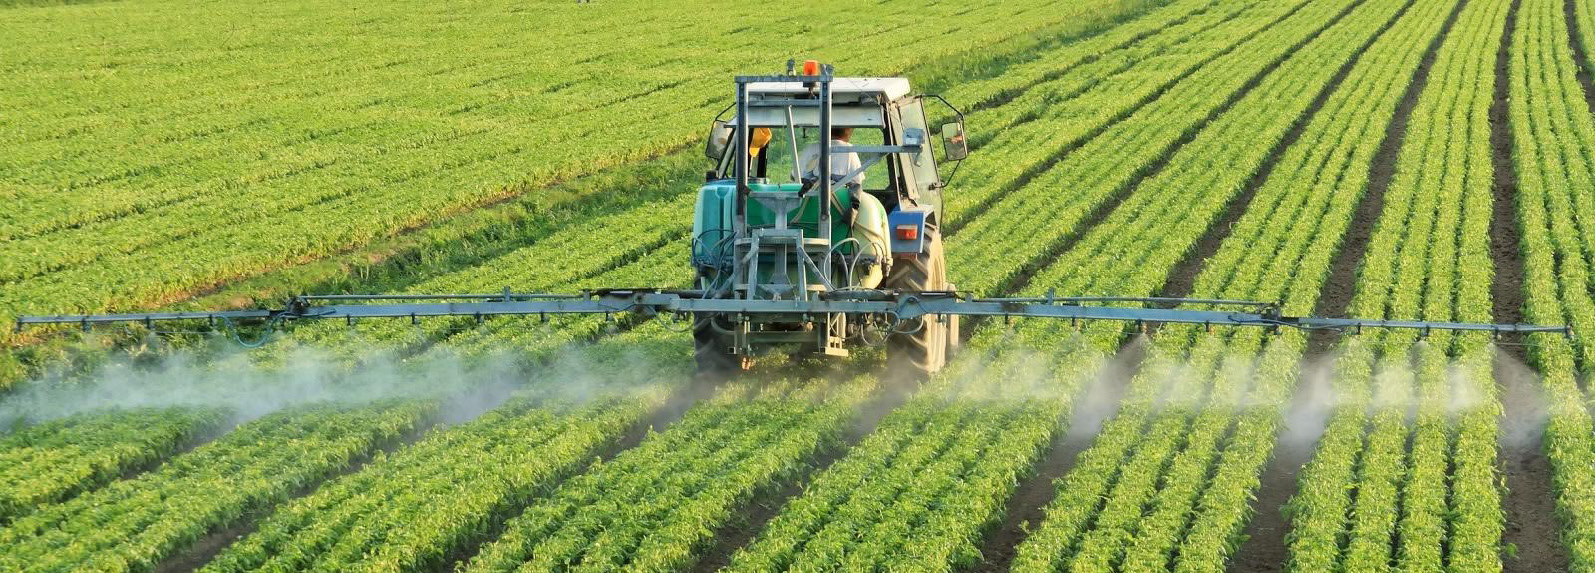 The most widely used weedkiller in history: Glyphosate